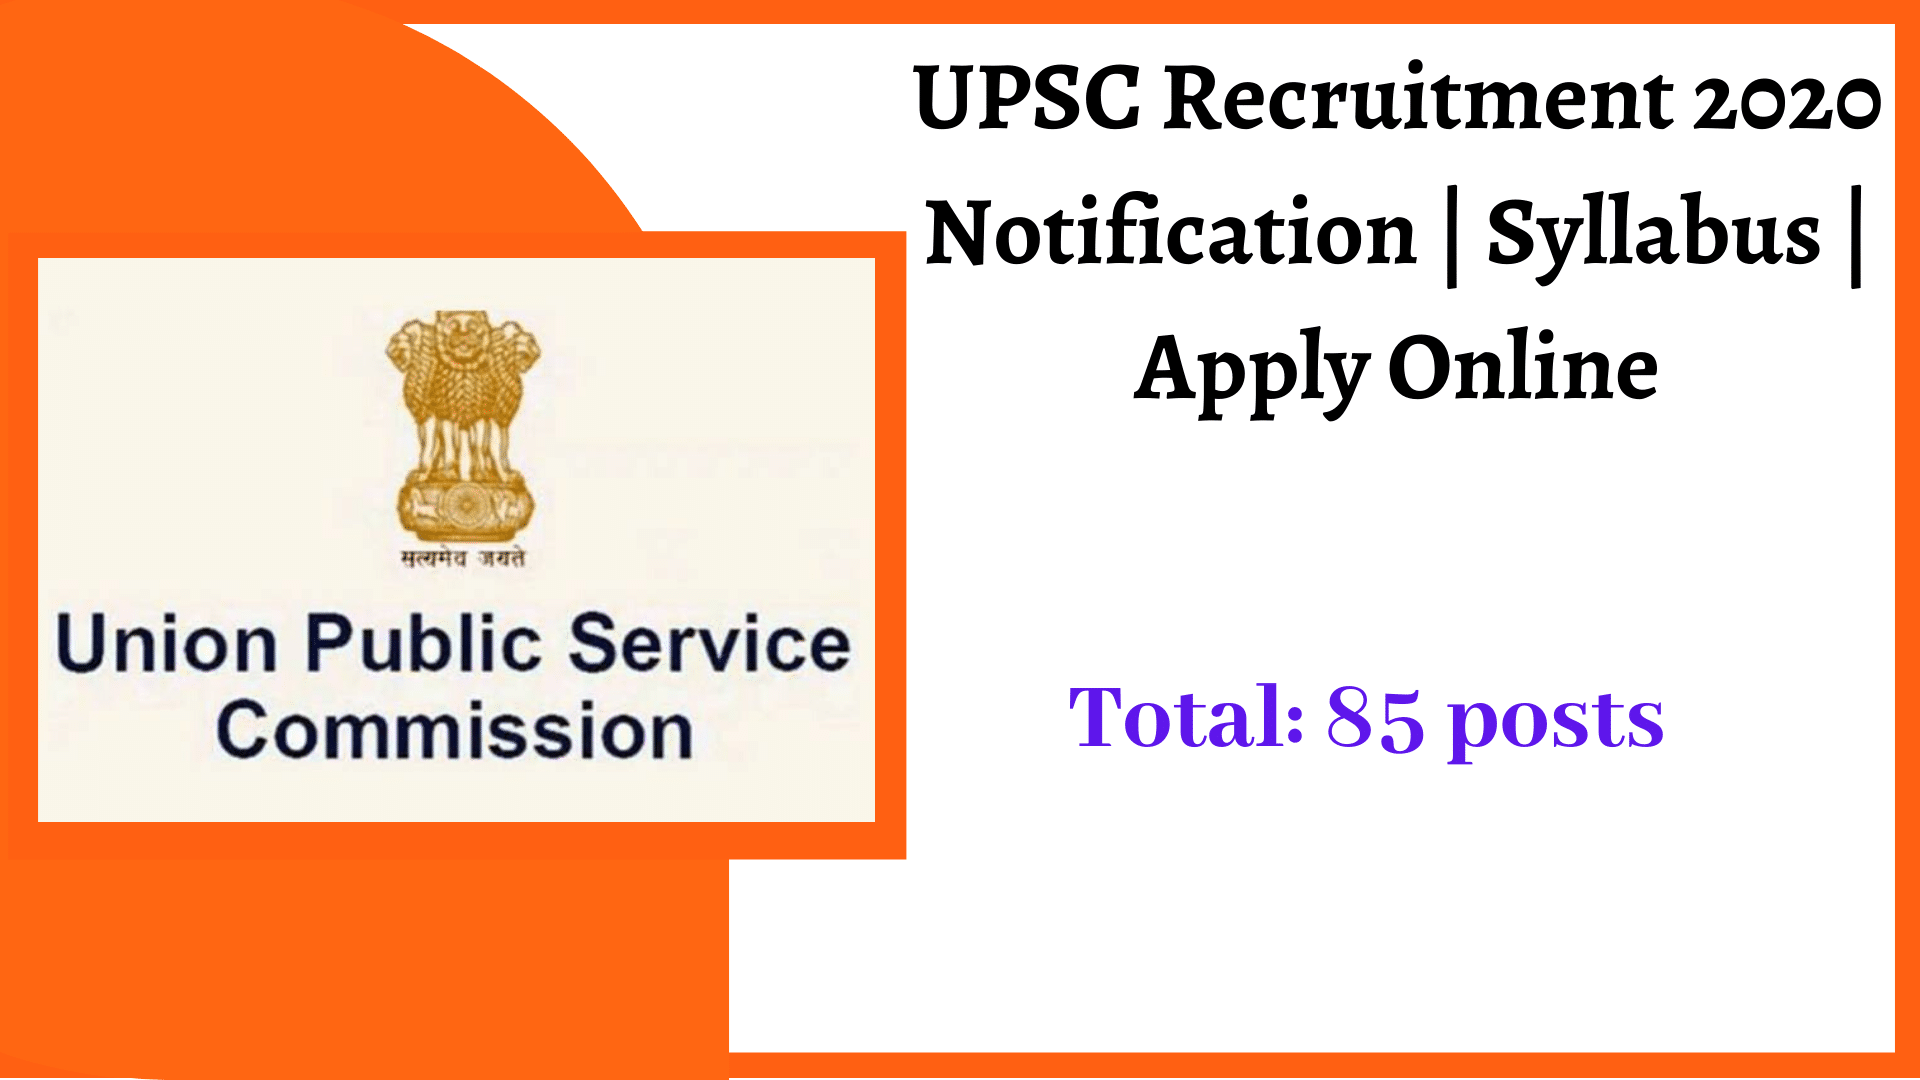 UPSC Recruitment 2020 Notification | Syllabus | Apply Online